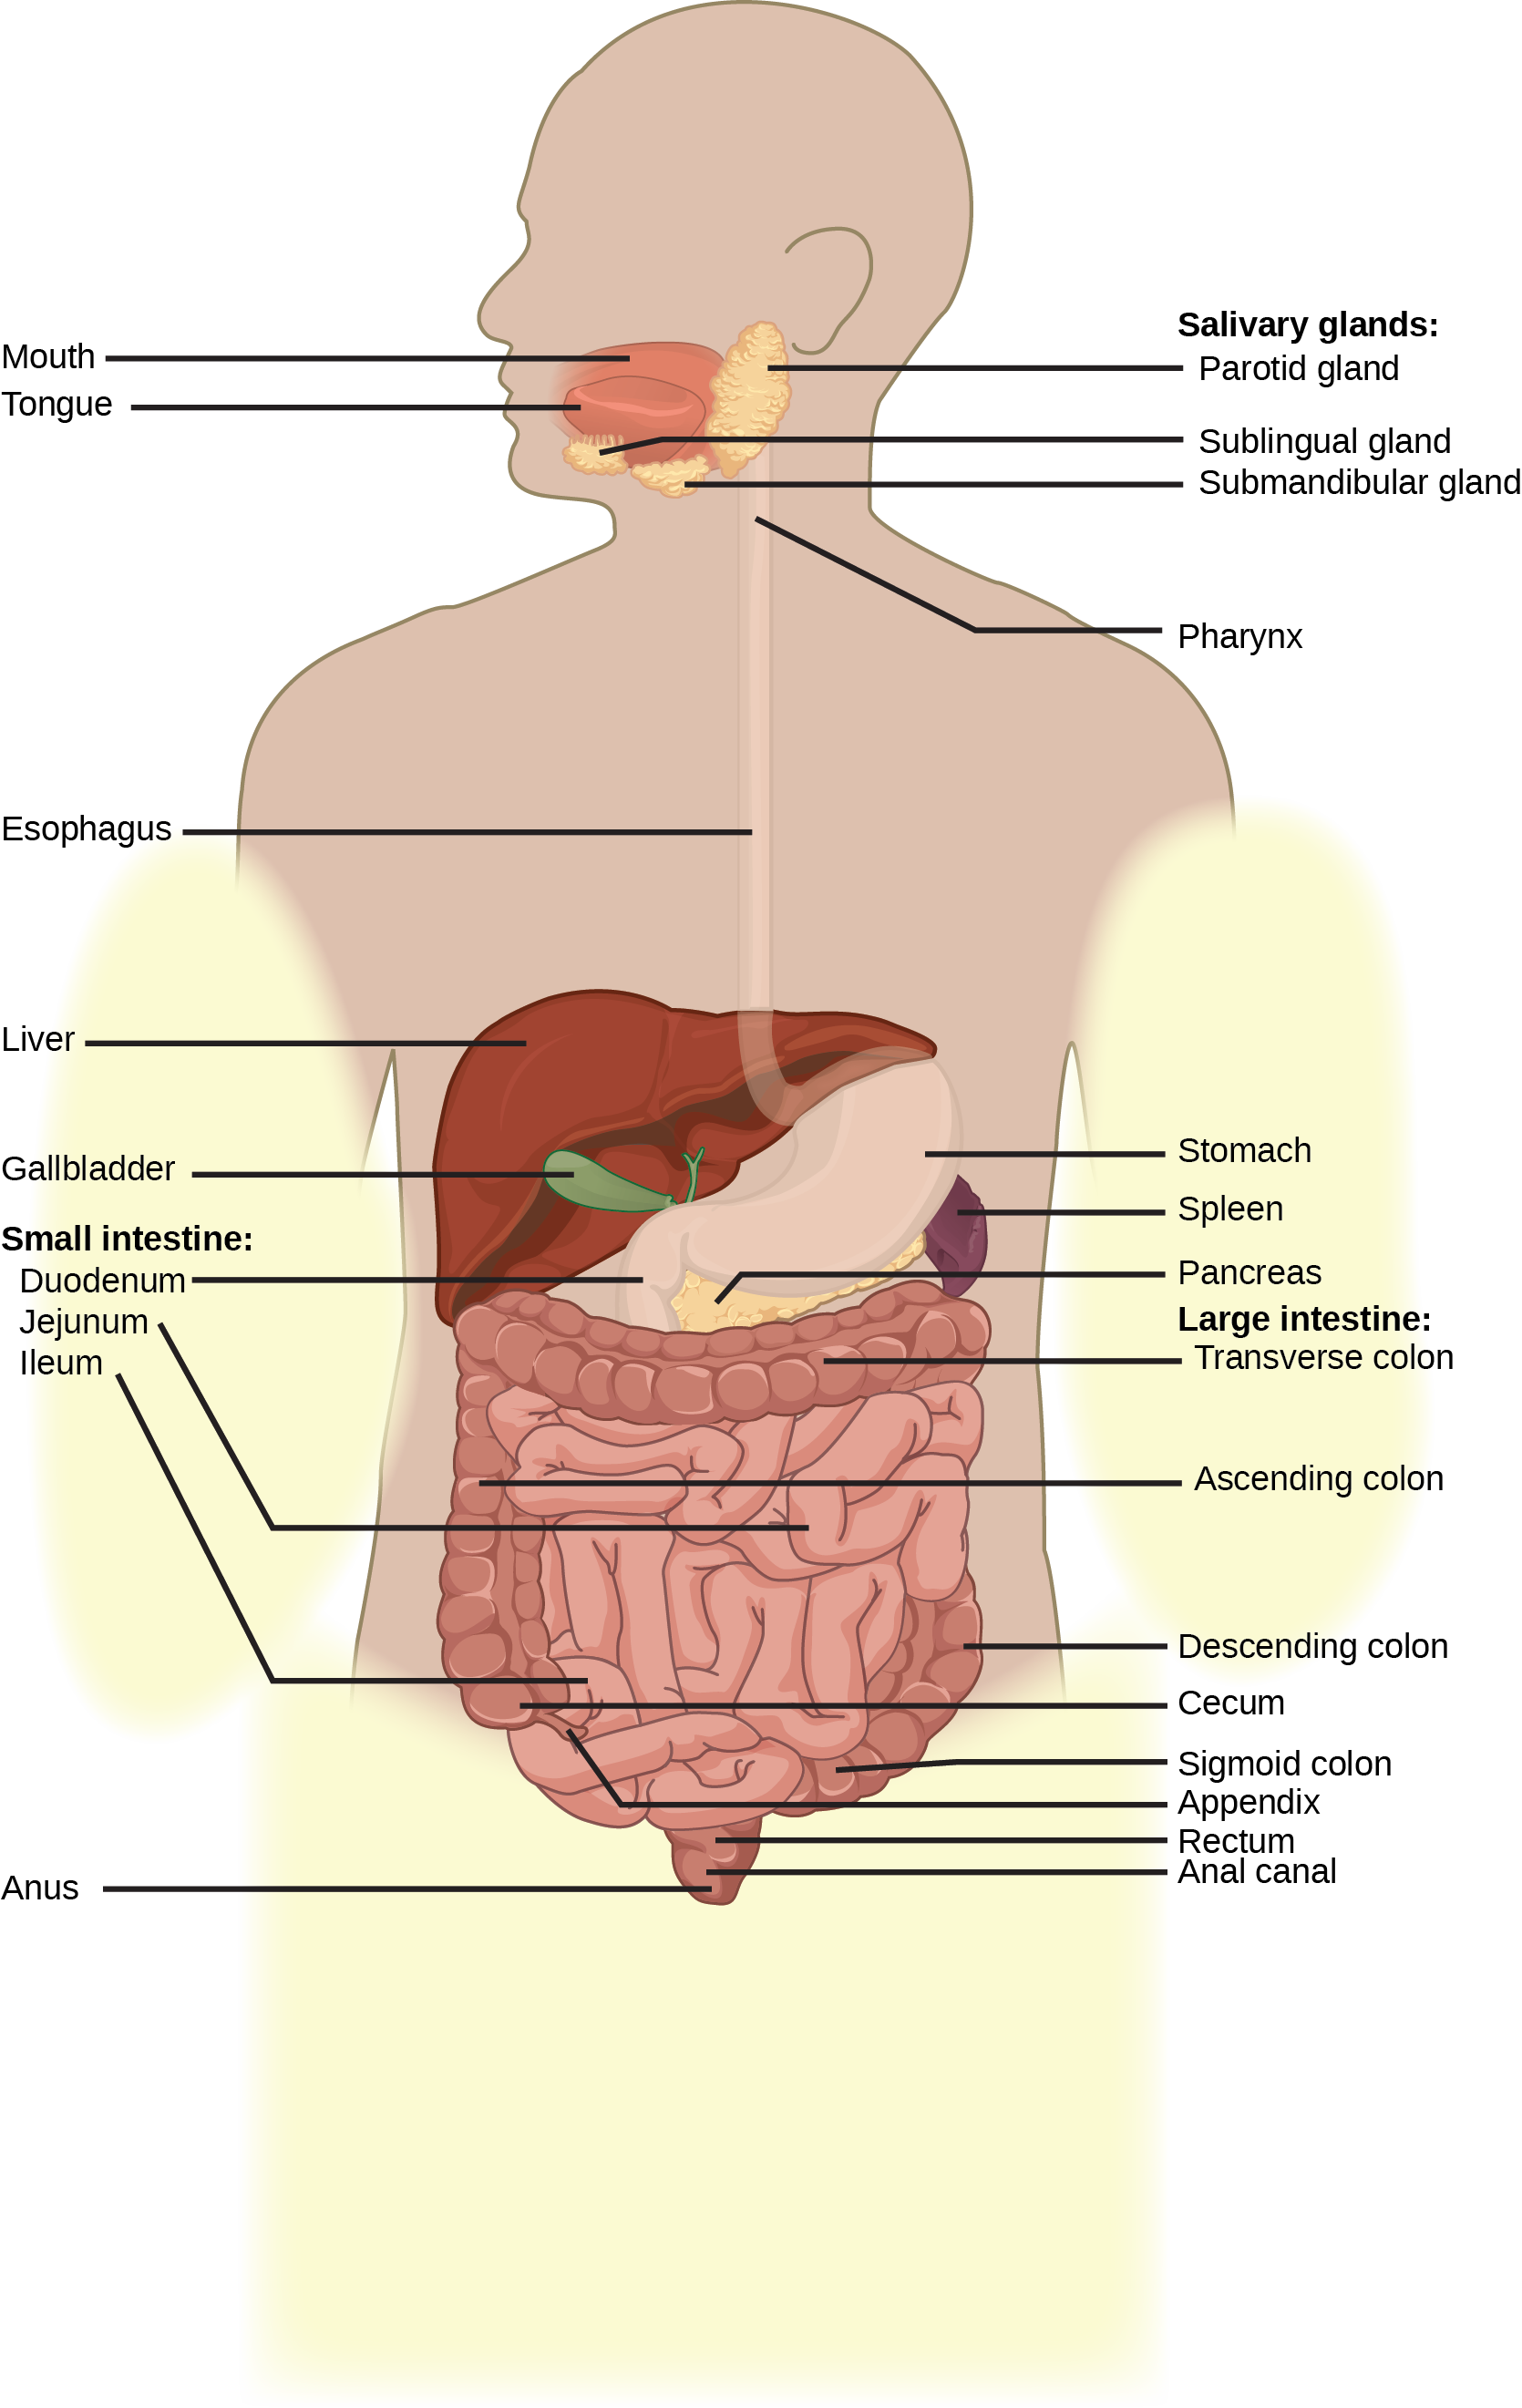 Illustration shows the human lower digestive system, which begins with the stomach, a sac that lies above the large intestine. The stomach empties into the small intestine, which is a long, highly folded tube. The beginning of the small intestine is called the duodenum, the long middle part is called the jejunum, and the end is called the ileum. The ileum empties into the large intestine on the right side of the body. Beneath the junction of the small and large intestine is a small pouch called the cecum. The appendix is at the bottom end of the cecum. The large intestine travels up the left side of the body, across the top of the small intestine, then down the right side of the body. These parts of the large intestine are called the ascending colon, the transverse colon and the descending colon, respectively. The large intestine empties into the rectum, which is connected to the anus. The pancreas is sandwiched between the stomach and large intestine. The liver is a triangular organ that sits above and slightly to the right of the stomach. The gallbladder is a small bulb between the liver and stomach.